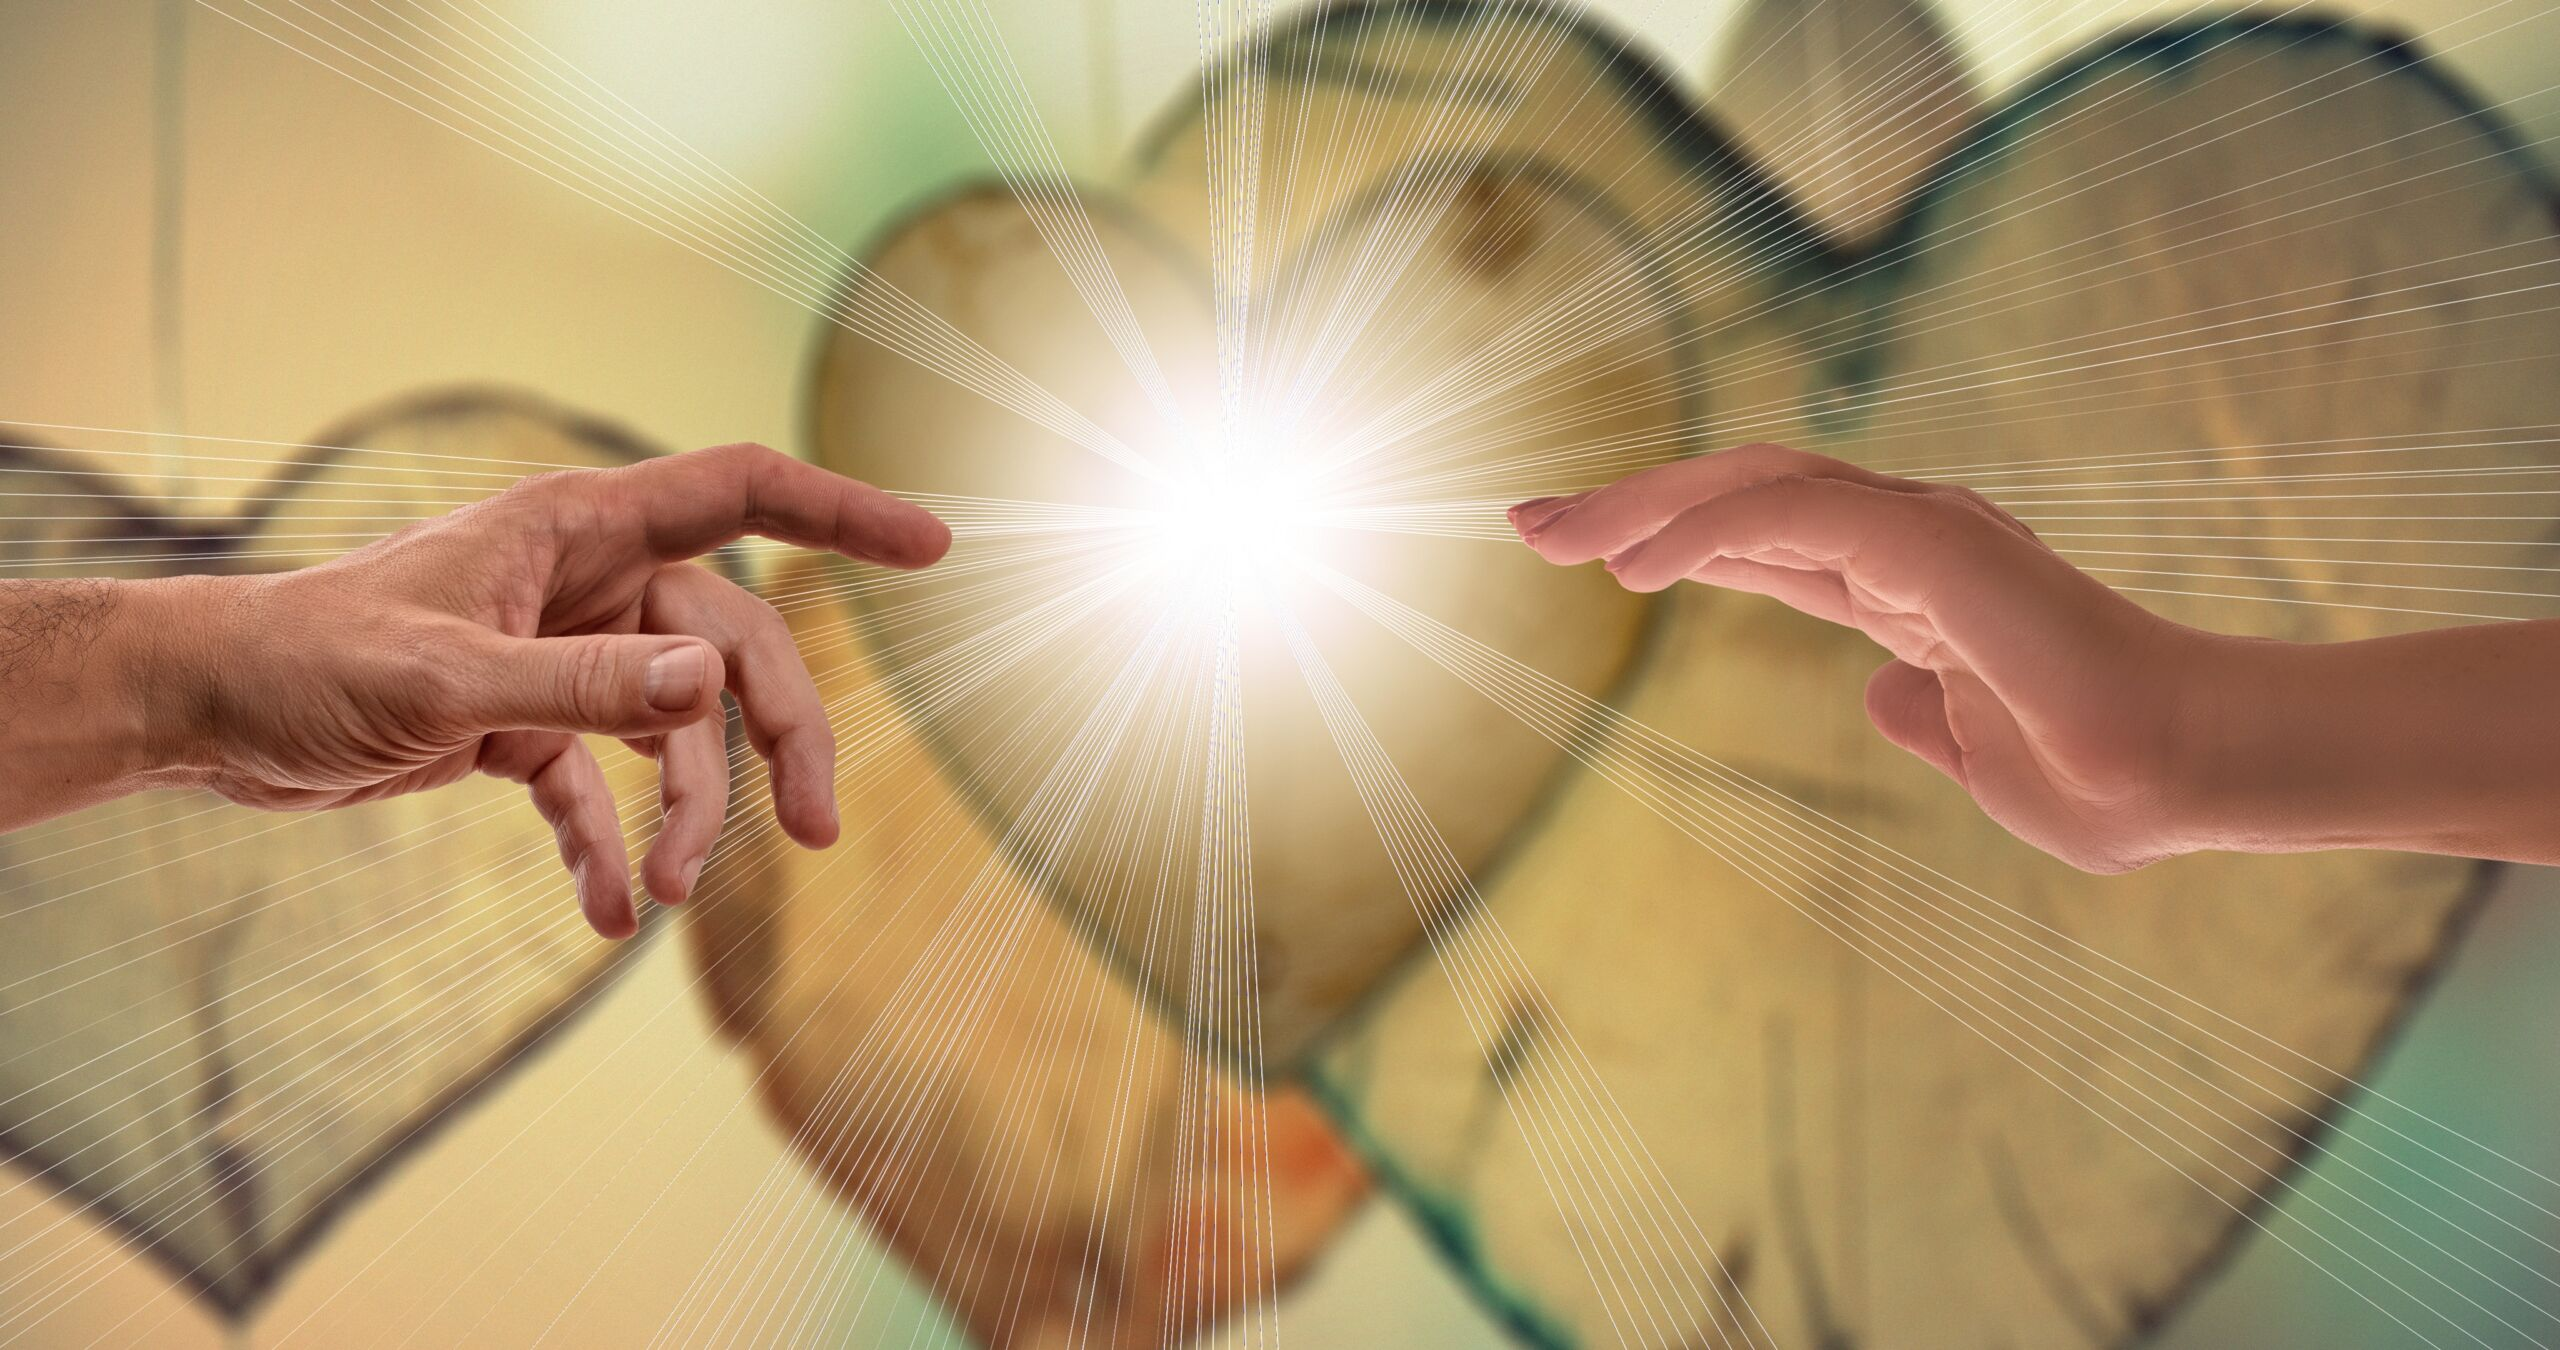 Contact Warmth Hands Close Love Hope Rays Faith